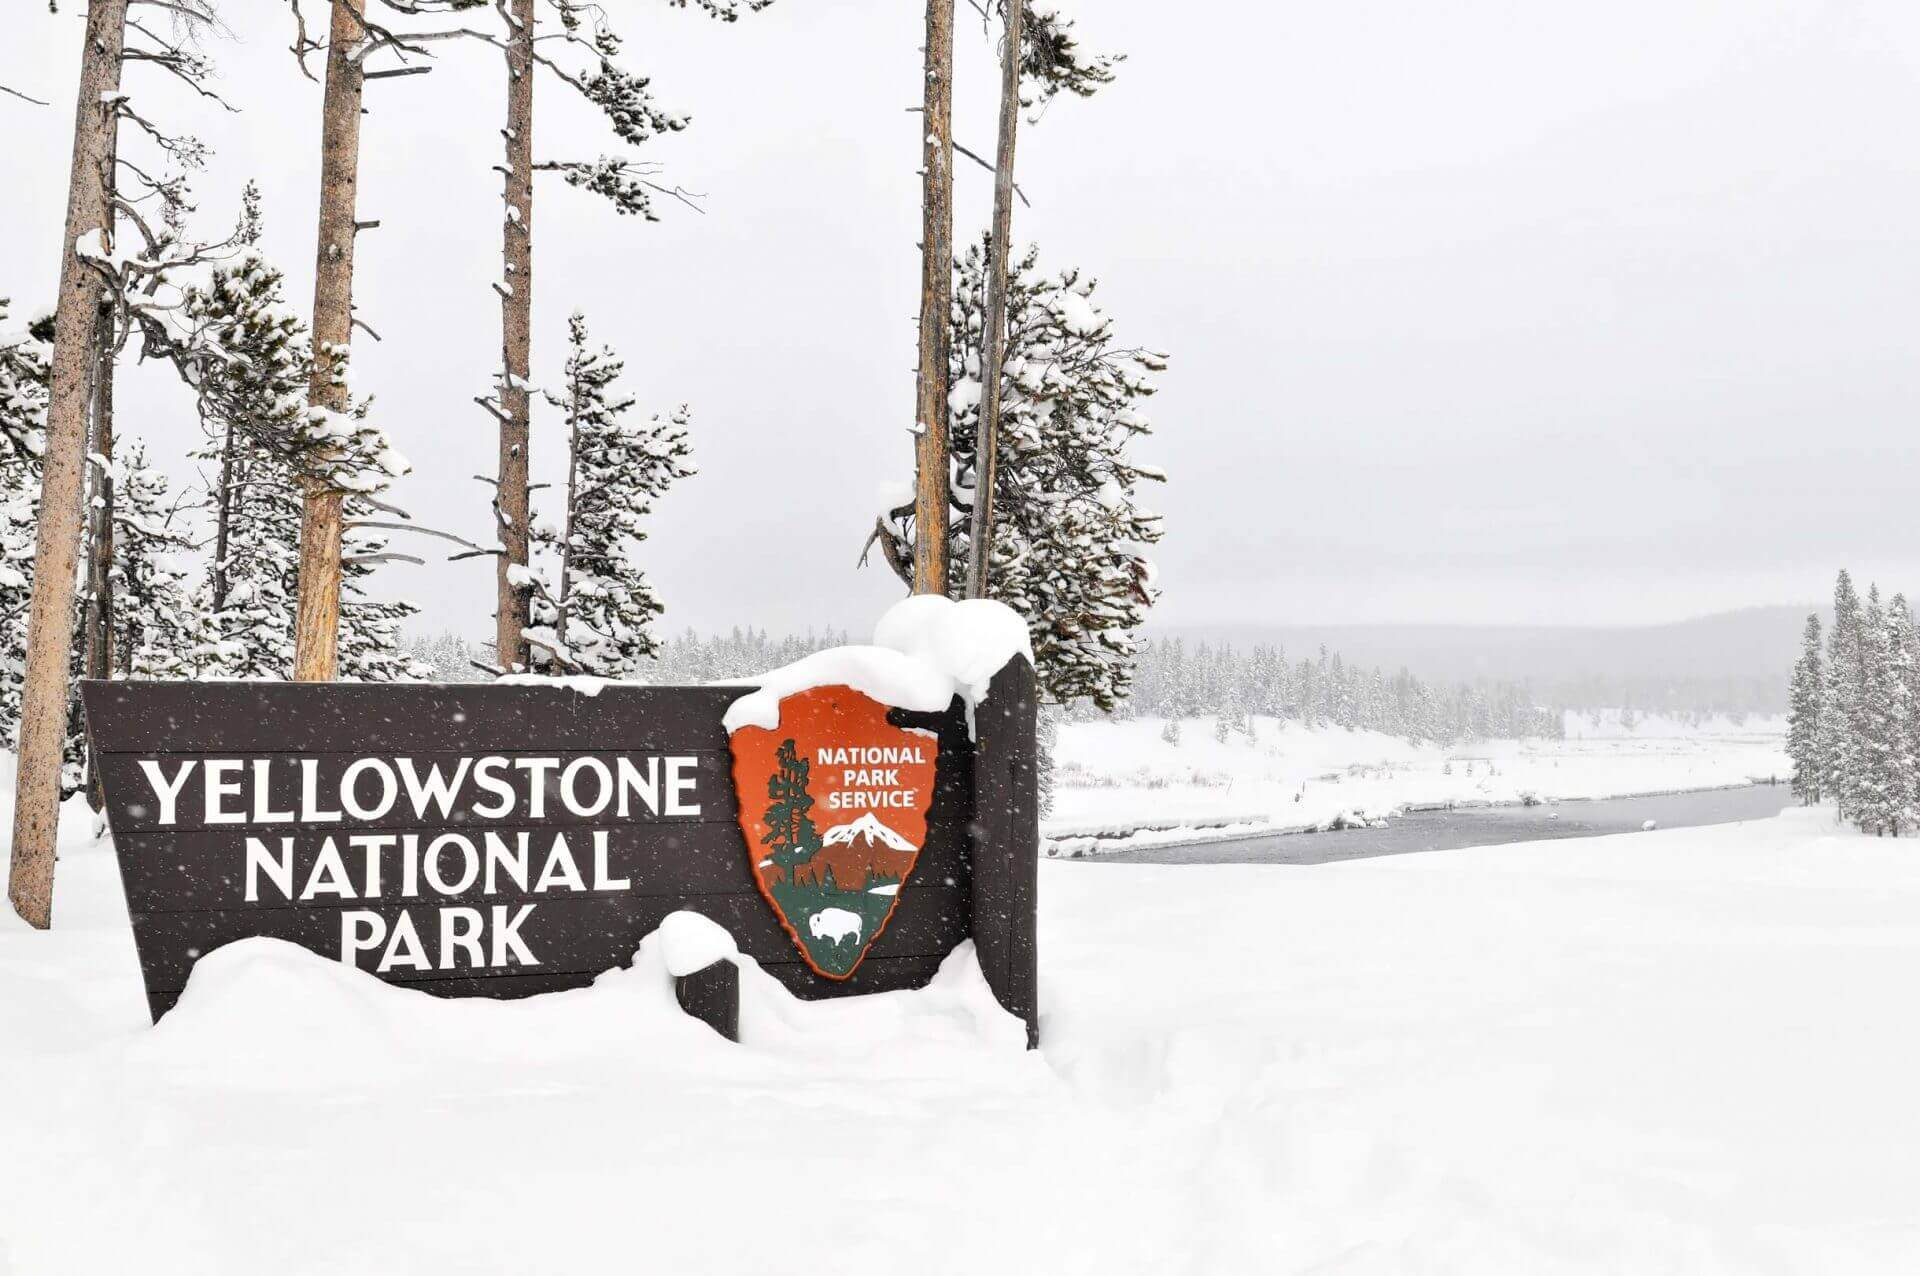 Yellowstone National Park entrance sign in winter